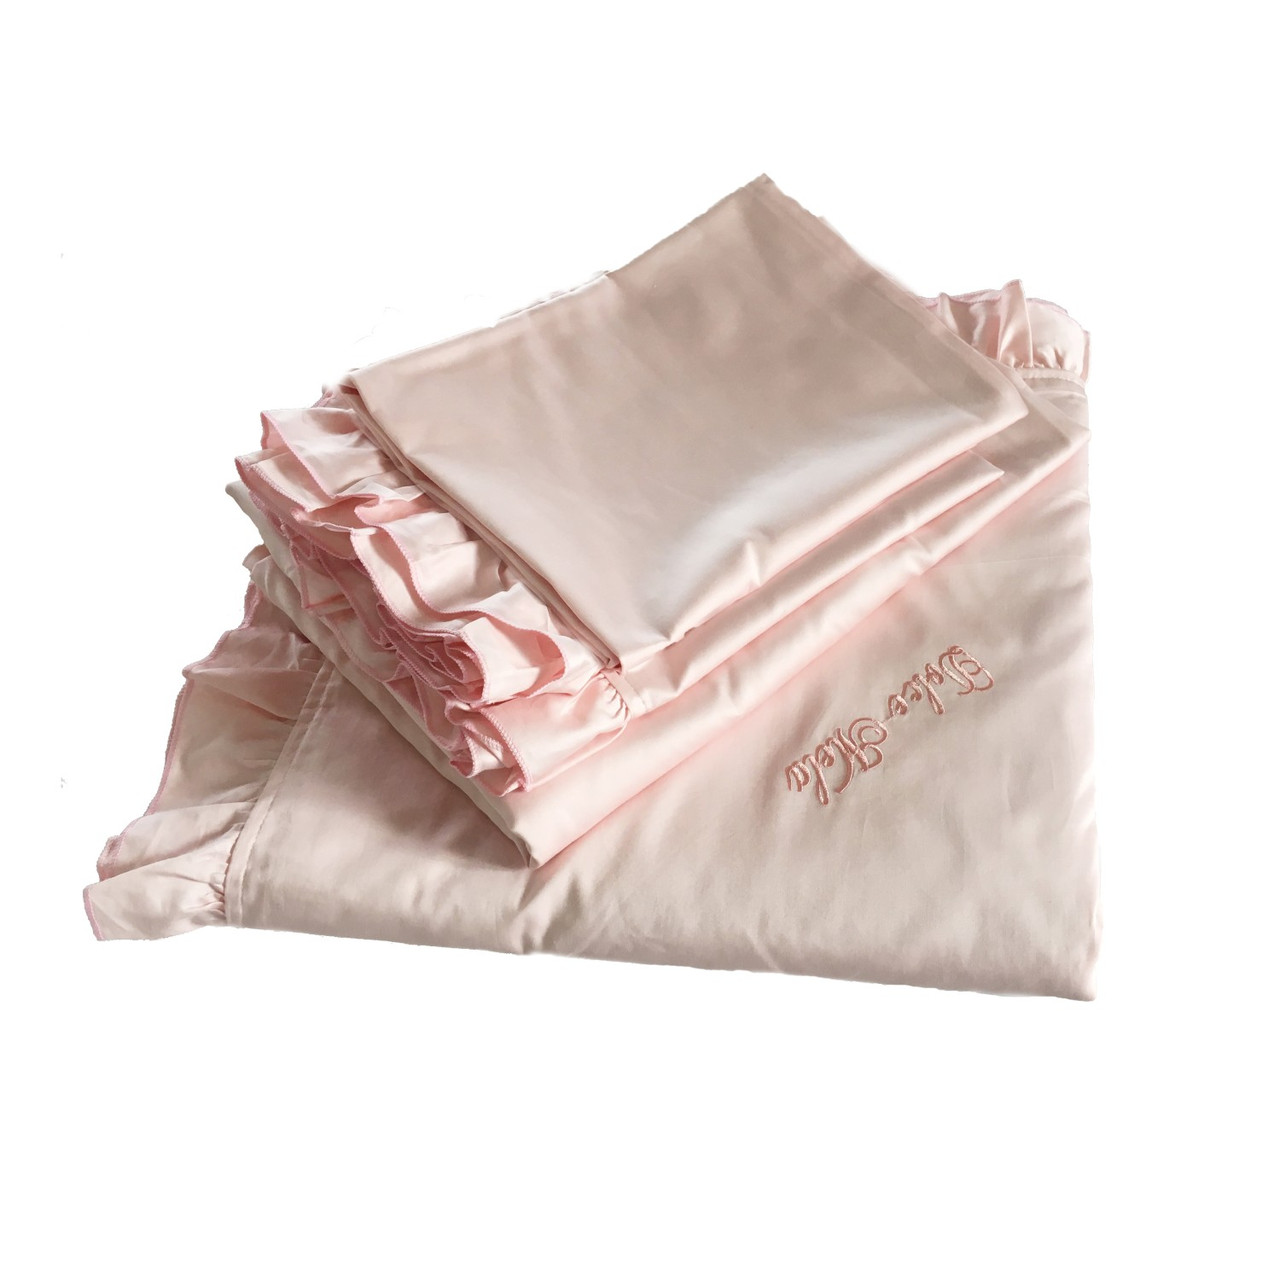 DM808T Ruffle Bedding by Dolce Mela Dropship Bed-in-Bag